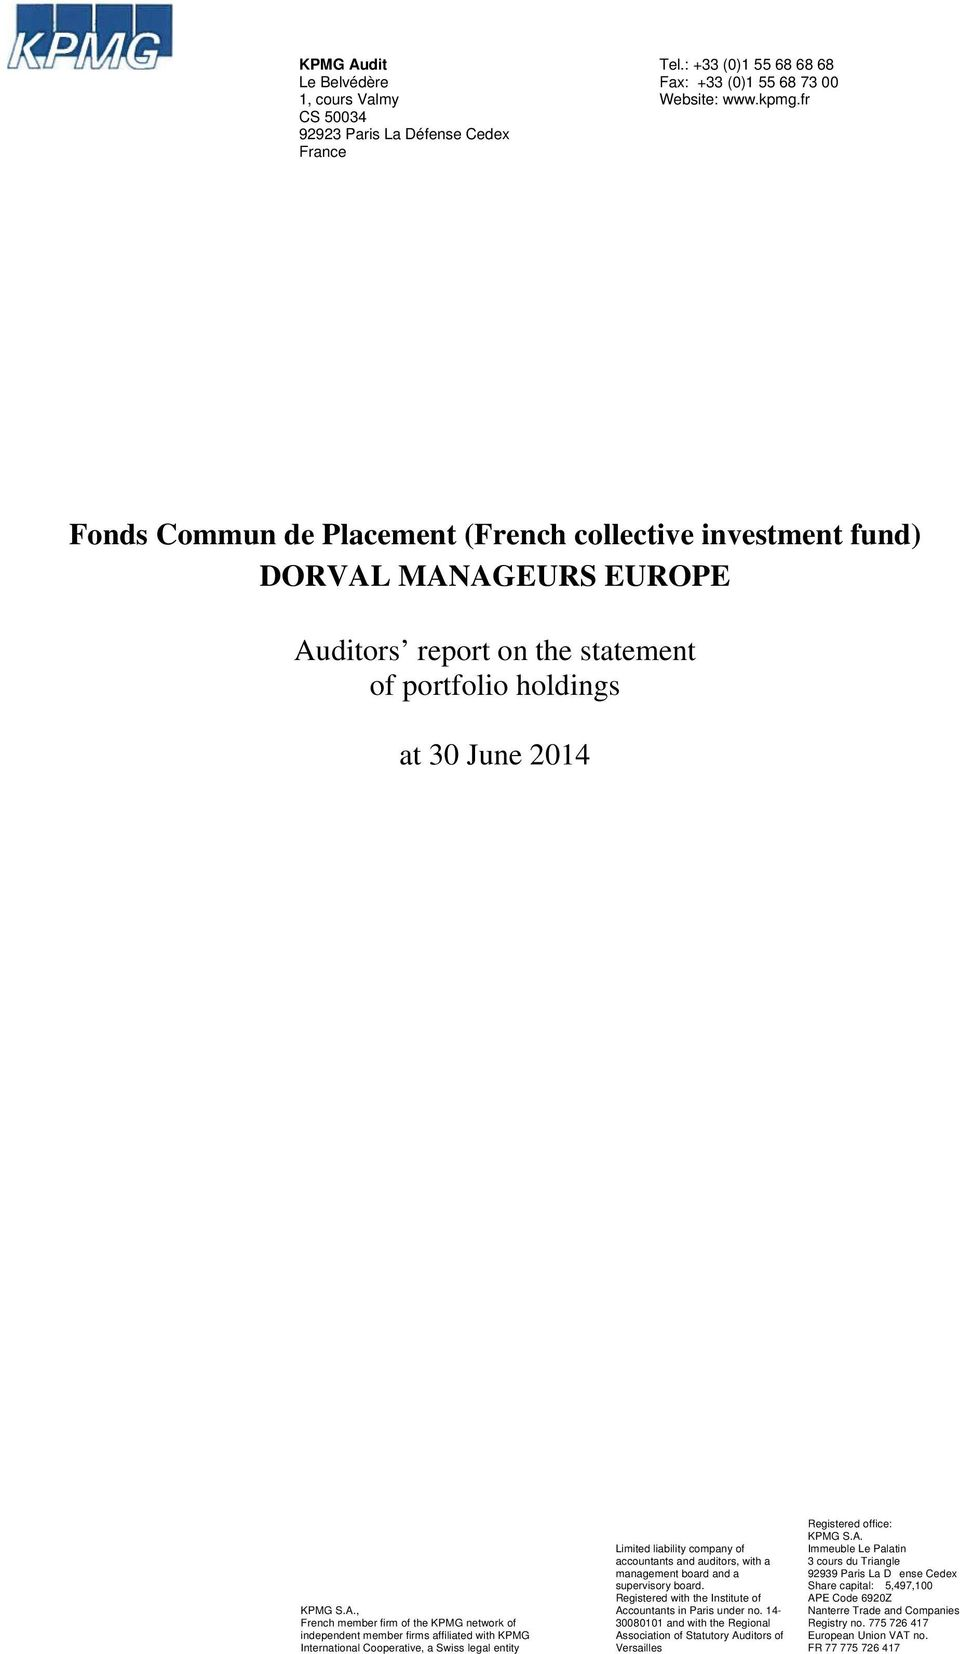 MANAGEURS EUROPE Auditors report on the statement of portfolio holdings at 30 June 2014 KPMG S.A., French member firm of the KPMG network of independent member firms affiliated with KPMG